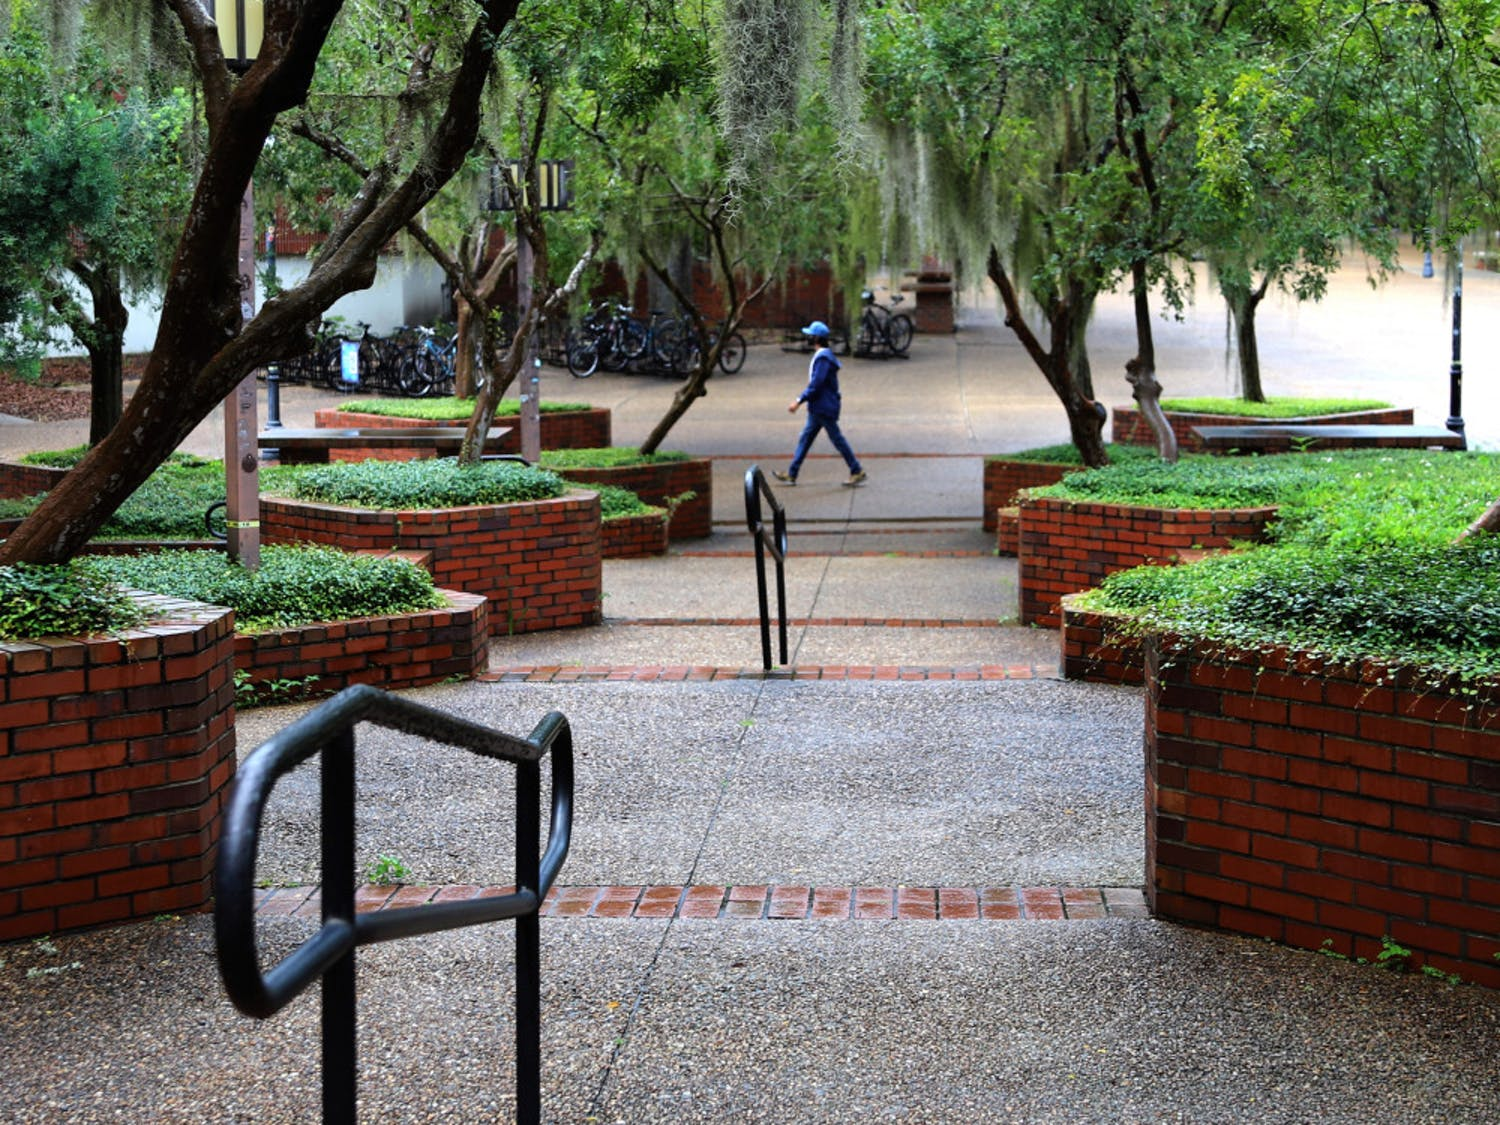 A lone man is seen walking through Turlington Plaza at UF in Gainesville, Fla., on August 31, 2020. The plaza, which is usually filled with people, remained relatively bare on the first day of fall classes.